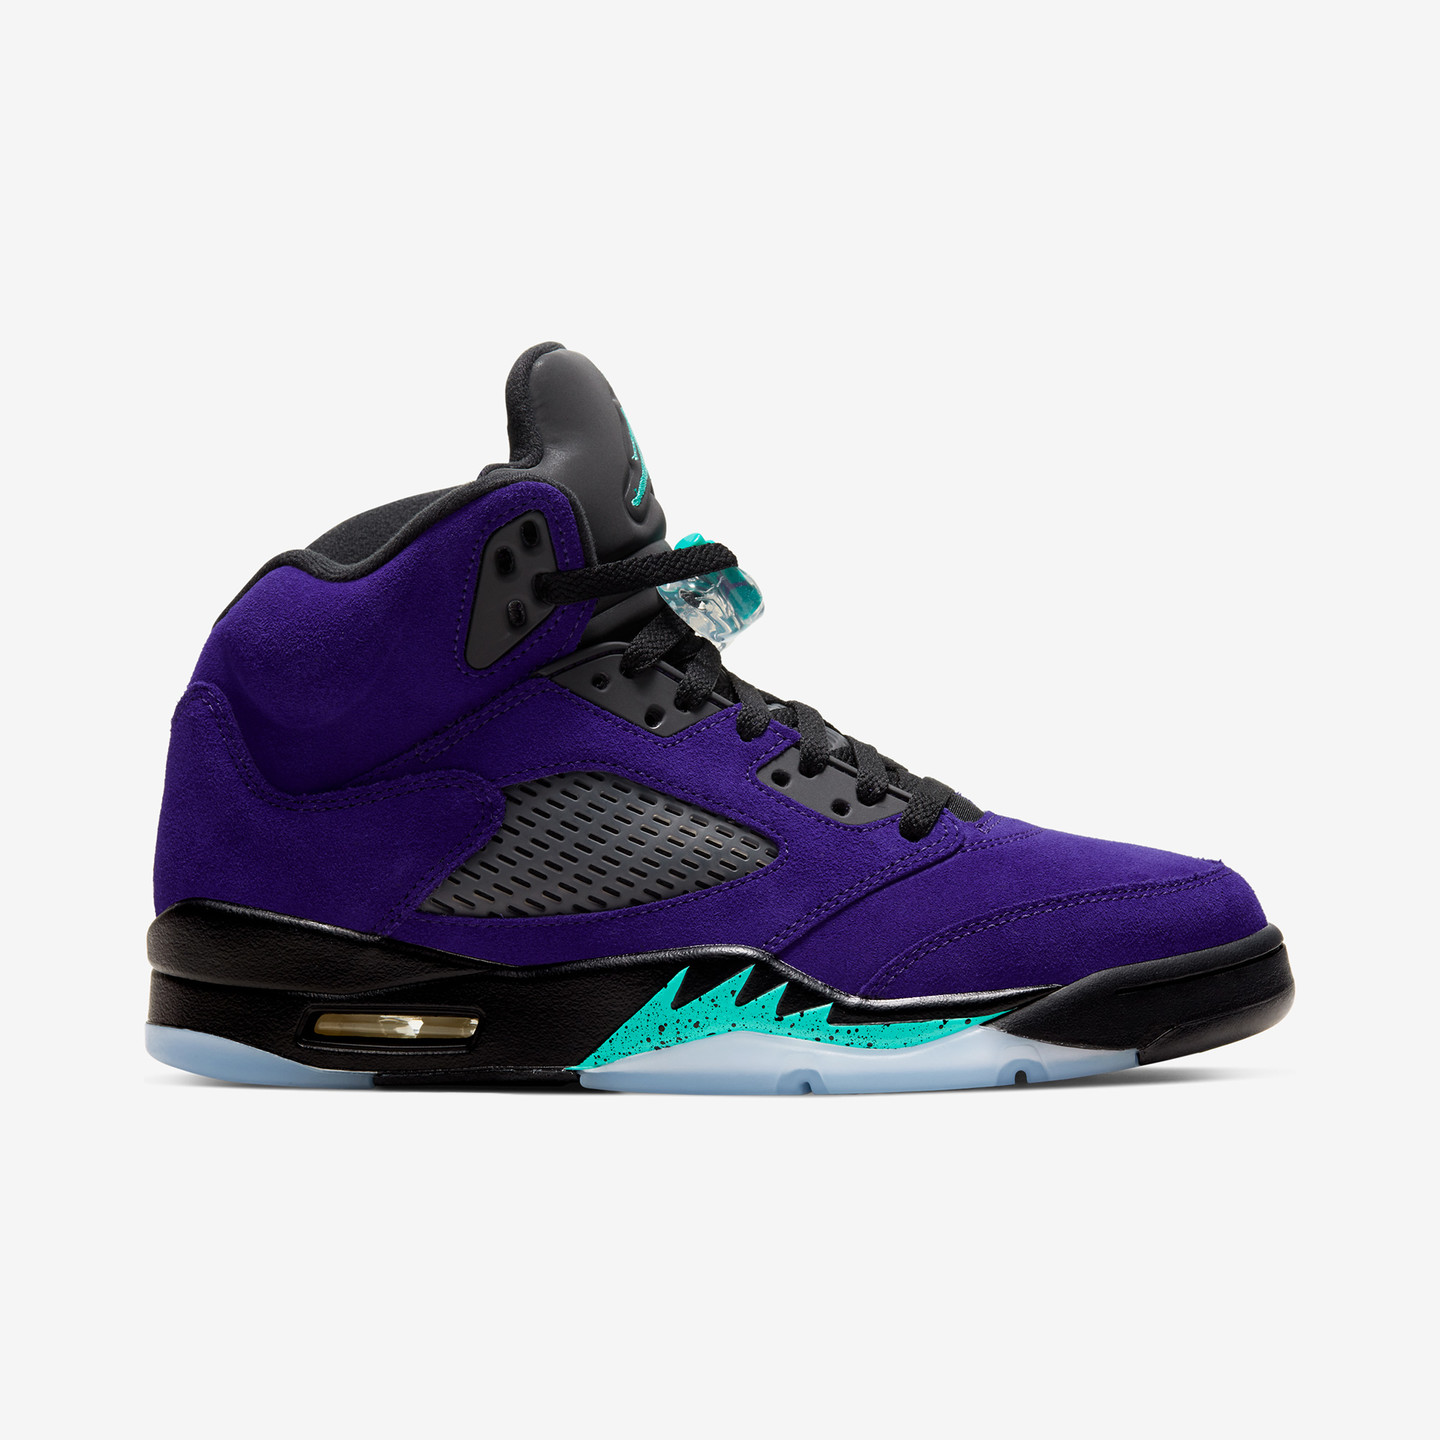 Jordan Air Jordan 5 Retro 'Alternate Grape' Grape Ice / New Emerald / Black 136027-500